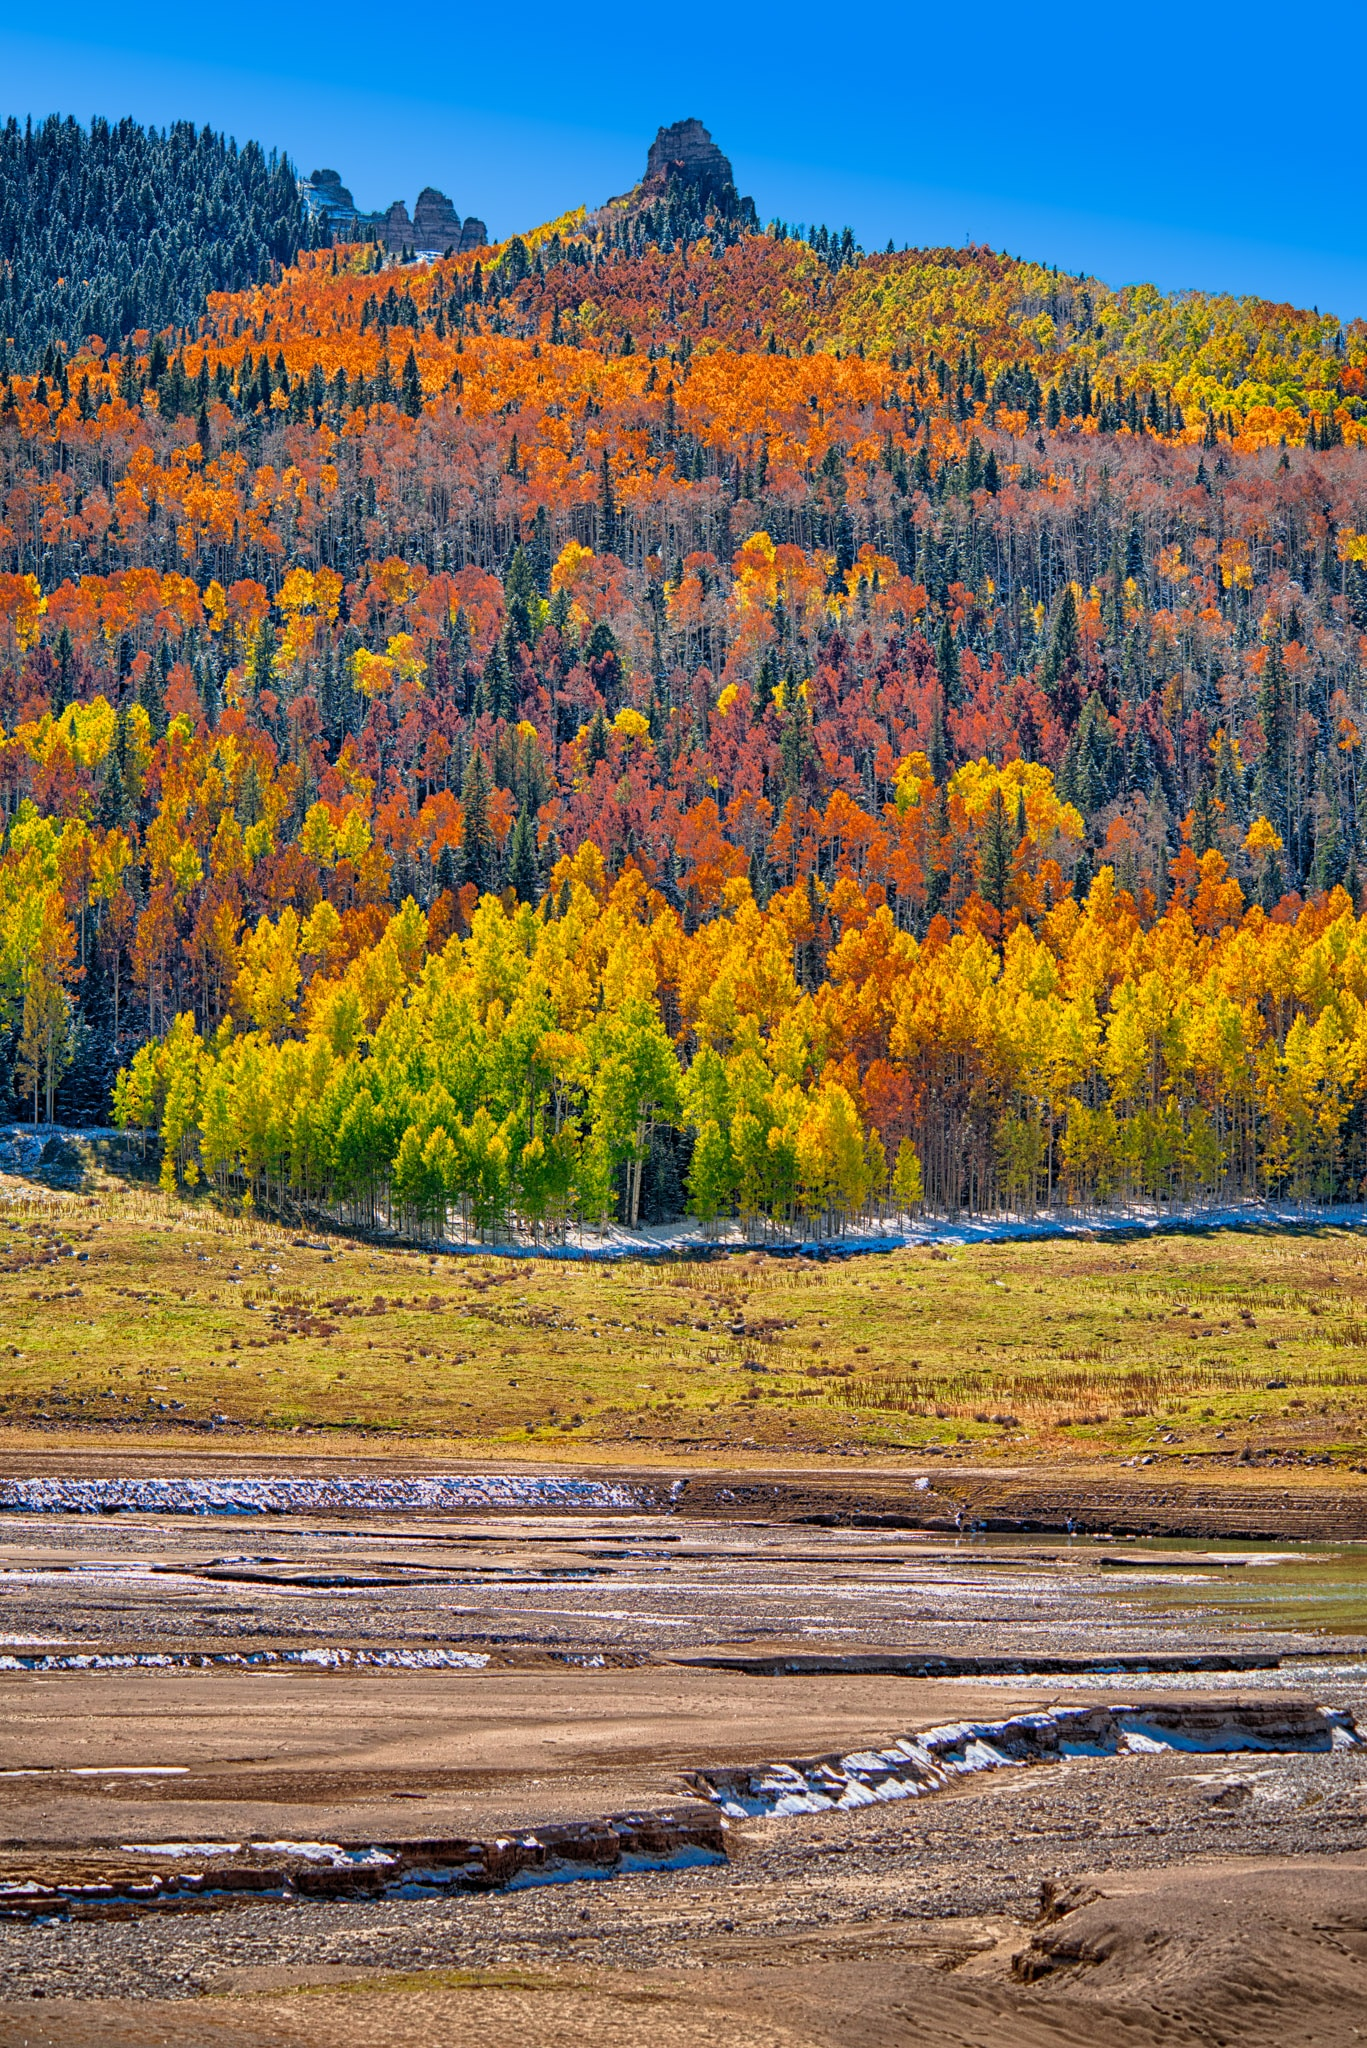 Green, yellow, orange, and red aspens march up the mountainsides above Silver Jack Reservoir on Owl Creek Pass Road near Ridgway, Colorado.